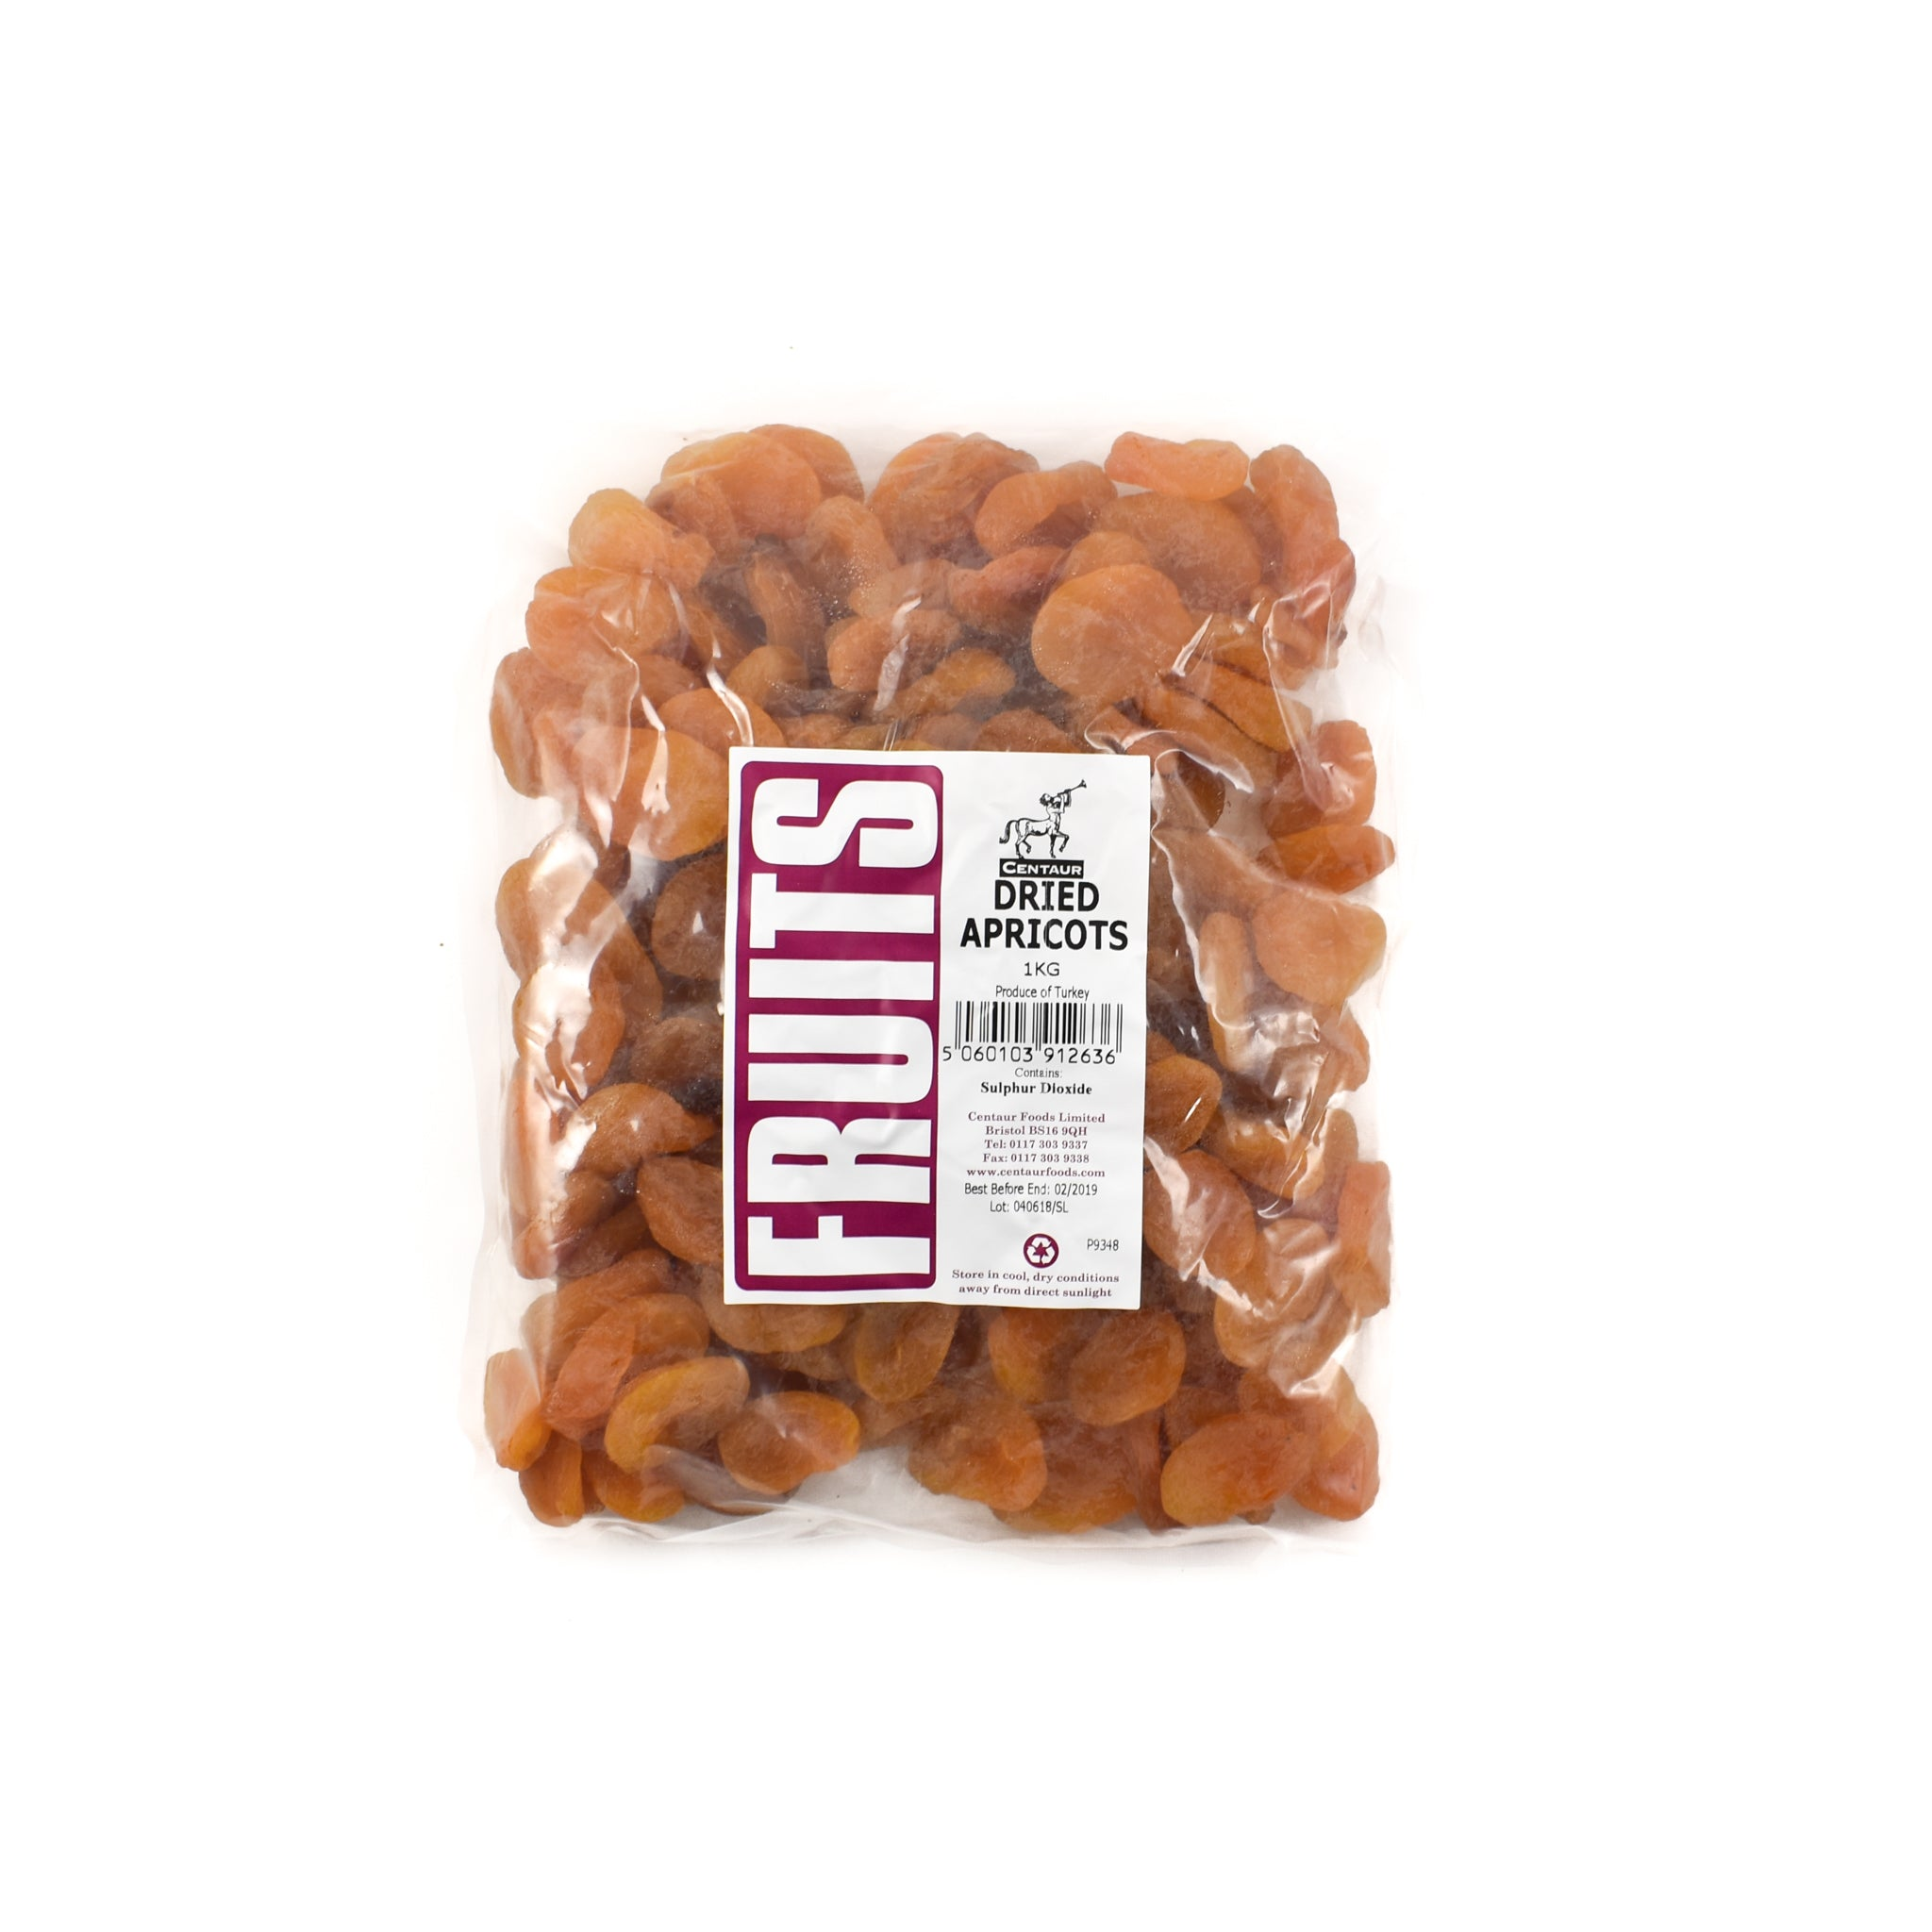 Centaur Dried Apricots 1kg Ingredients Baking Ingredients Dried & Preserved Fruit